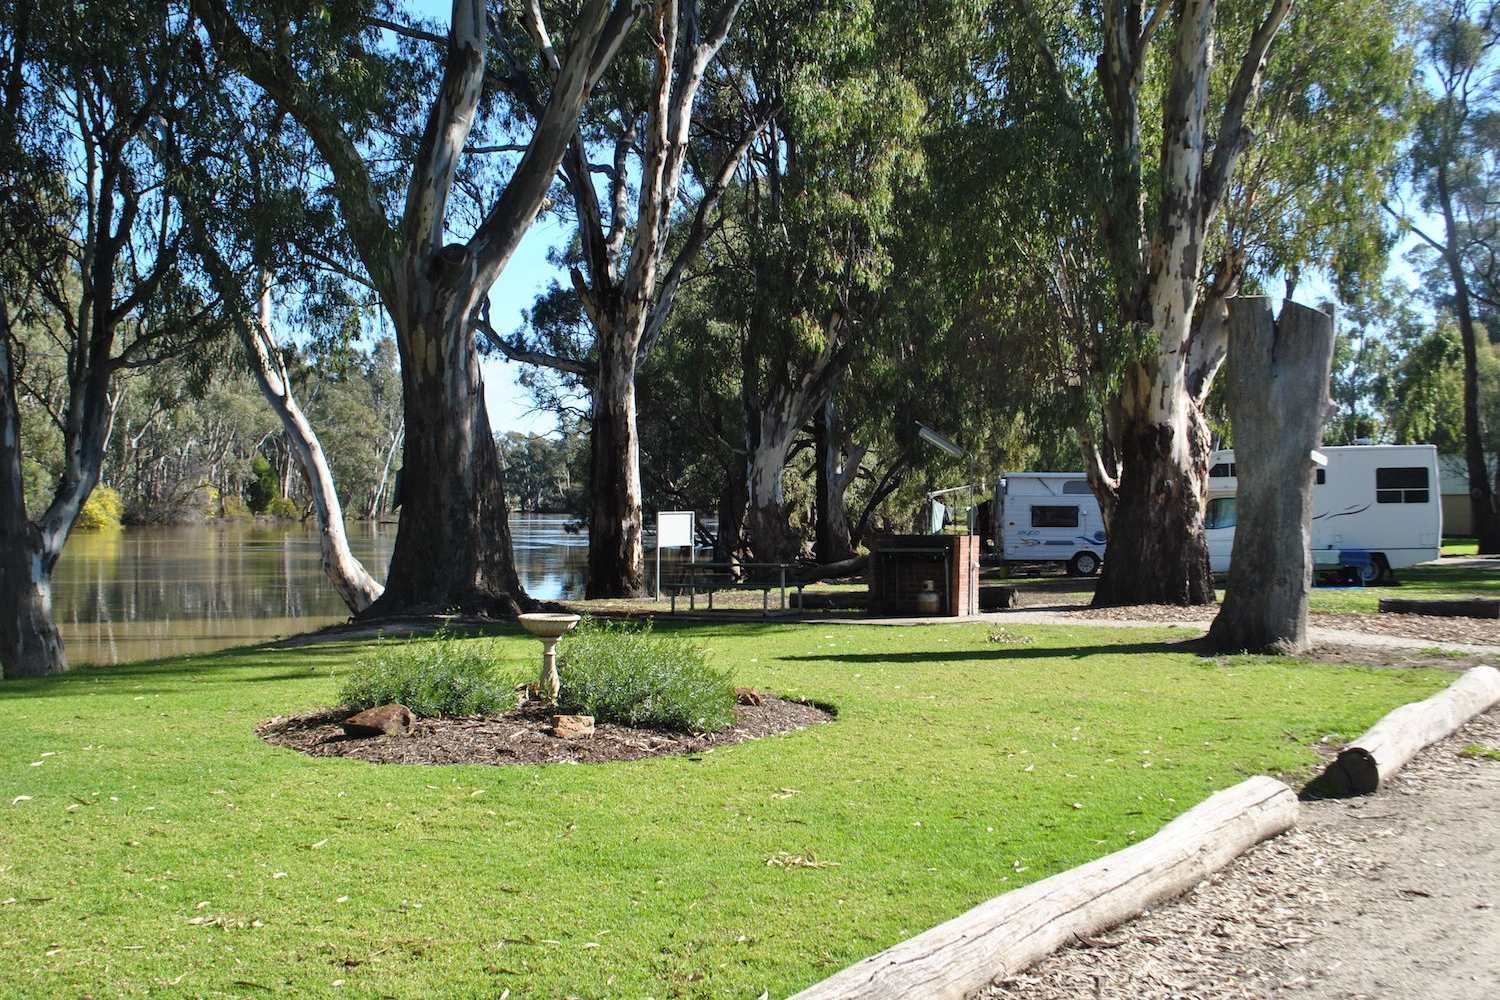 Barham Lakes Caravan Park - Barham Lakes Caravan Park offers the perfect place to stay on the river. Positioned in a natural bush setting, enjoy the peace and tranquillity beside the magnificent red gums.A: 138 East Barham Rd, BarhamP: 03 5453 2009E: stay@blcp.com.auVisit Website